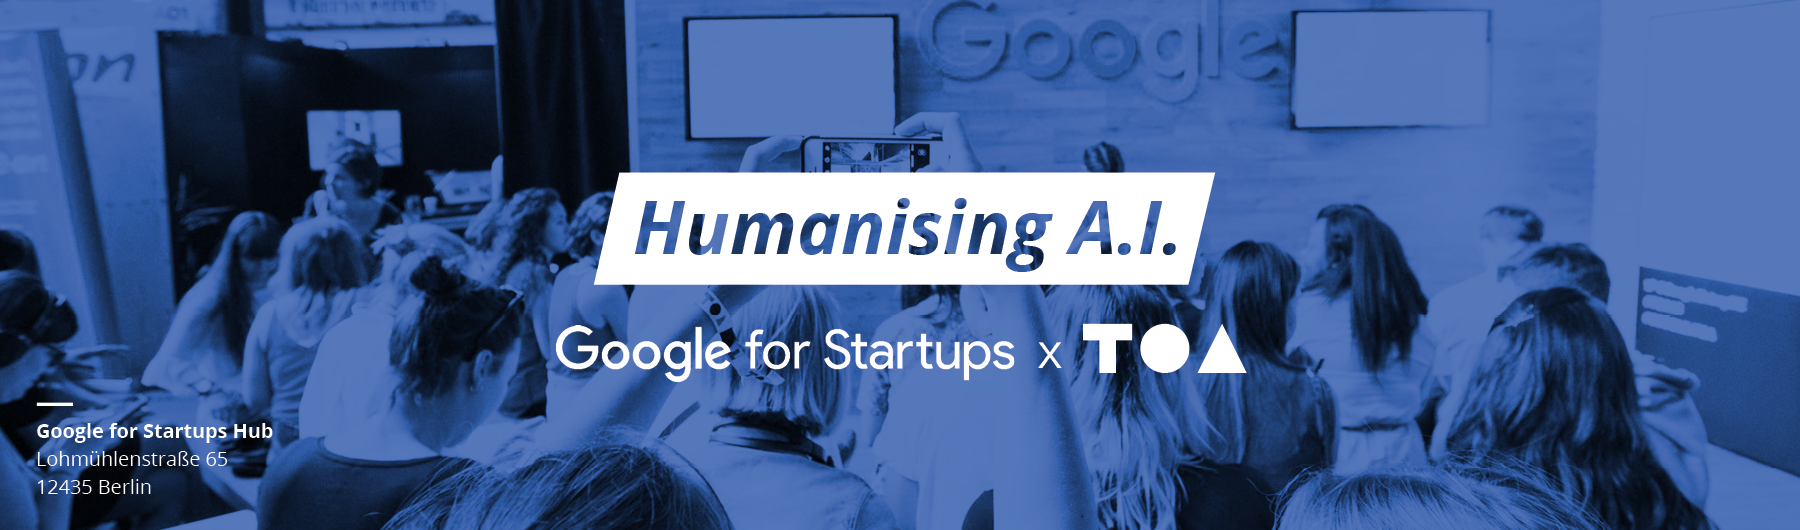 Google for Startups x TOA Presents - Humanising AI